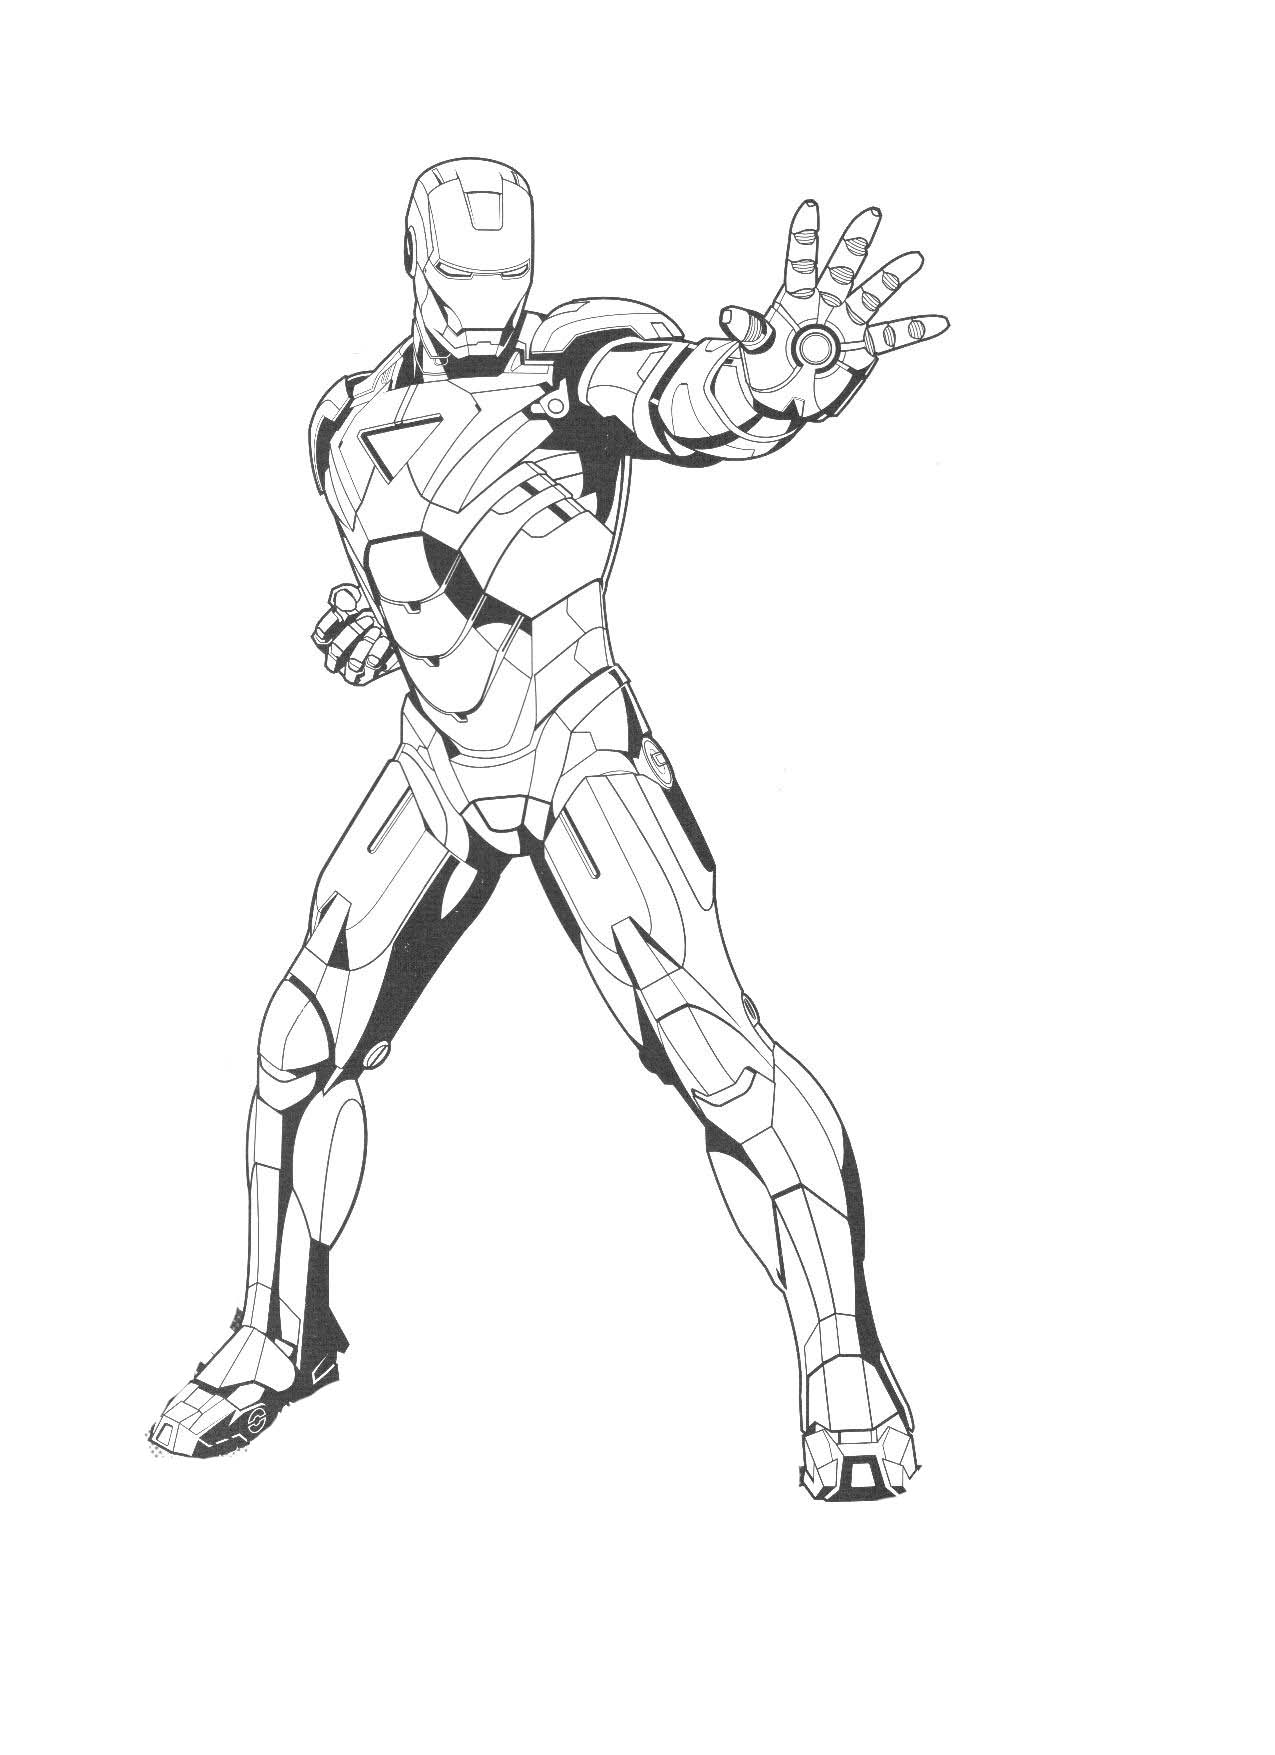 Adult Beauty Iron Man Printable Coloring Pages Gallery Images cute free printable iron man coloring pages for kids best images